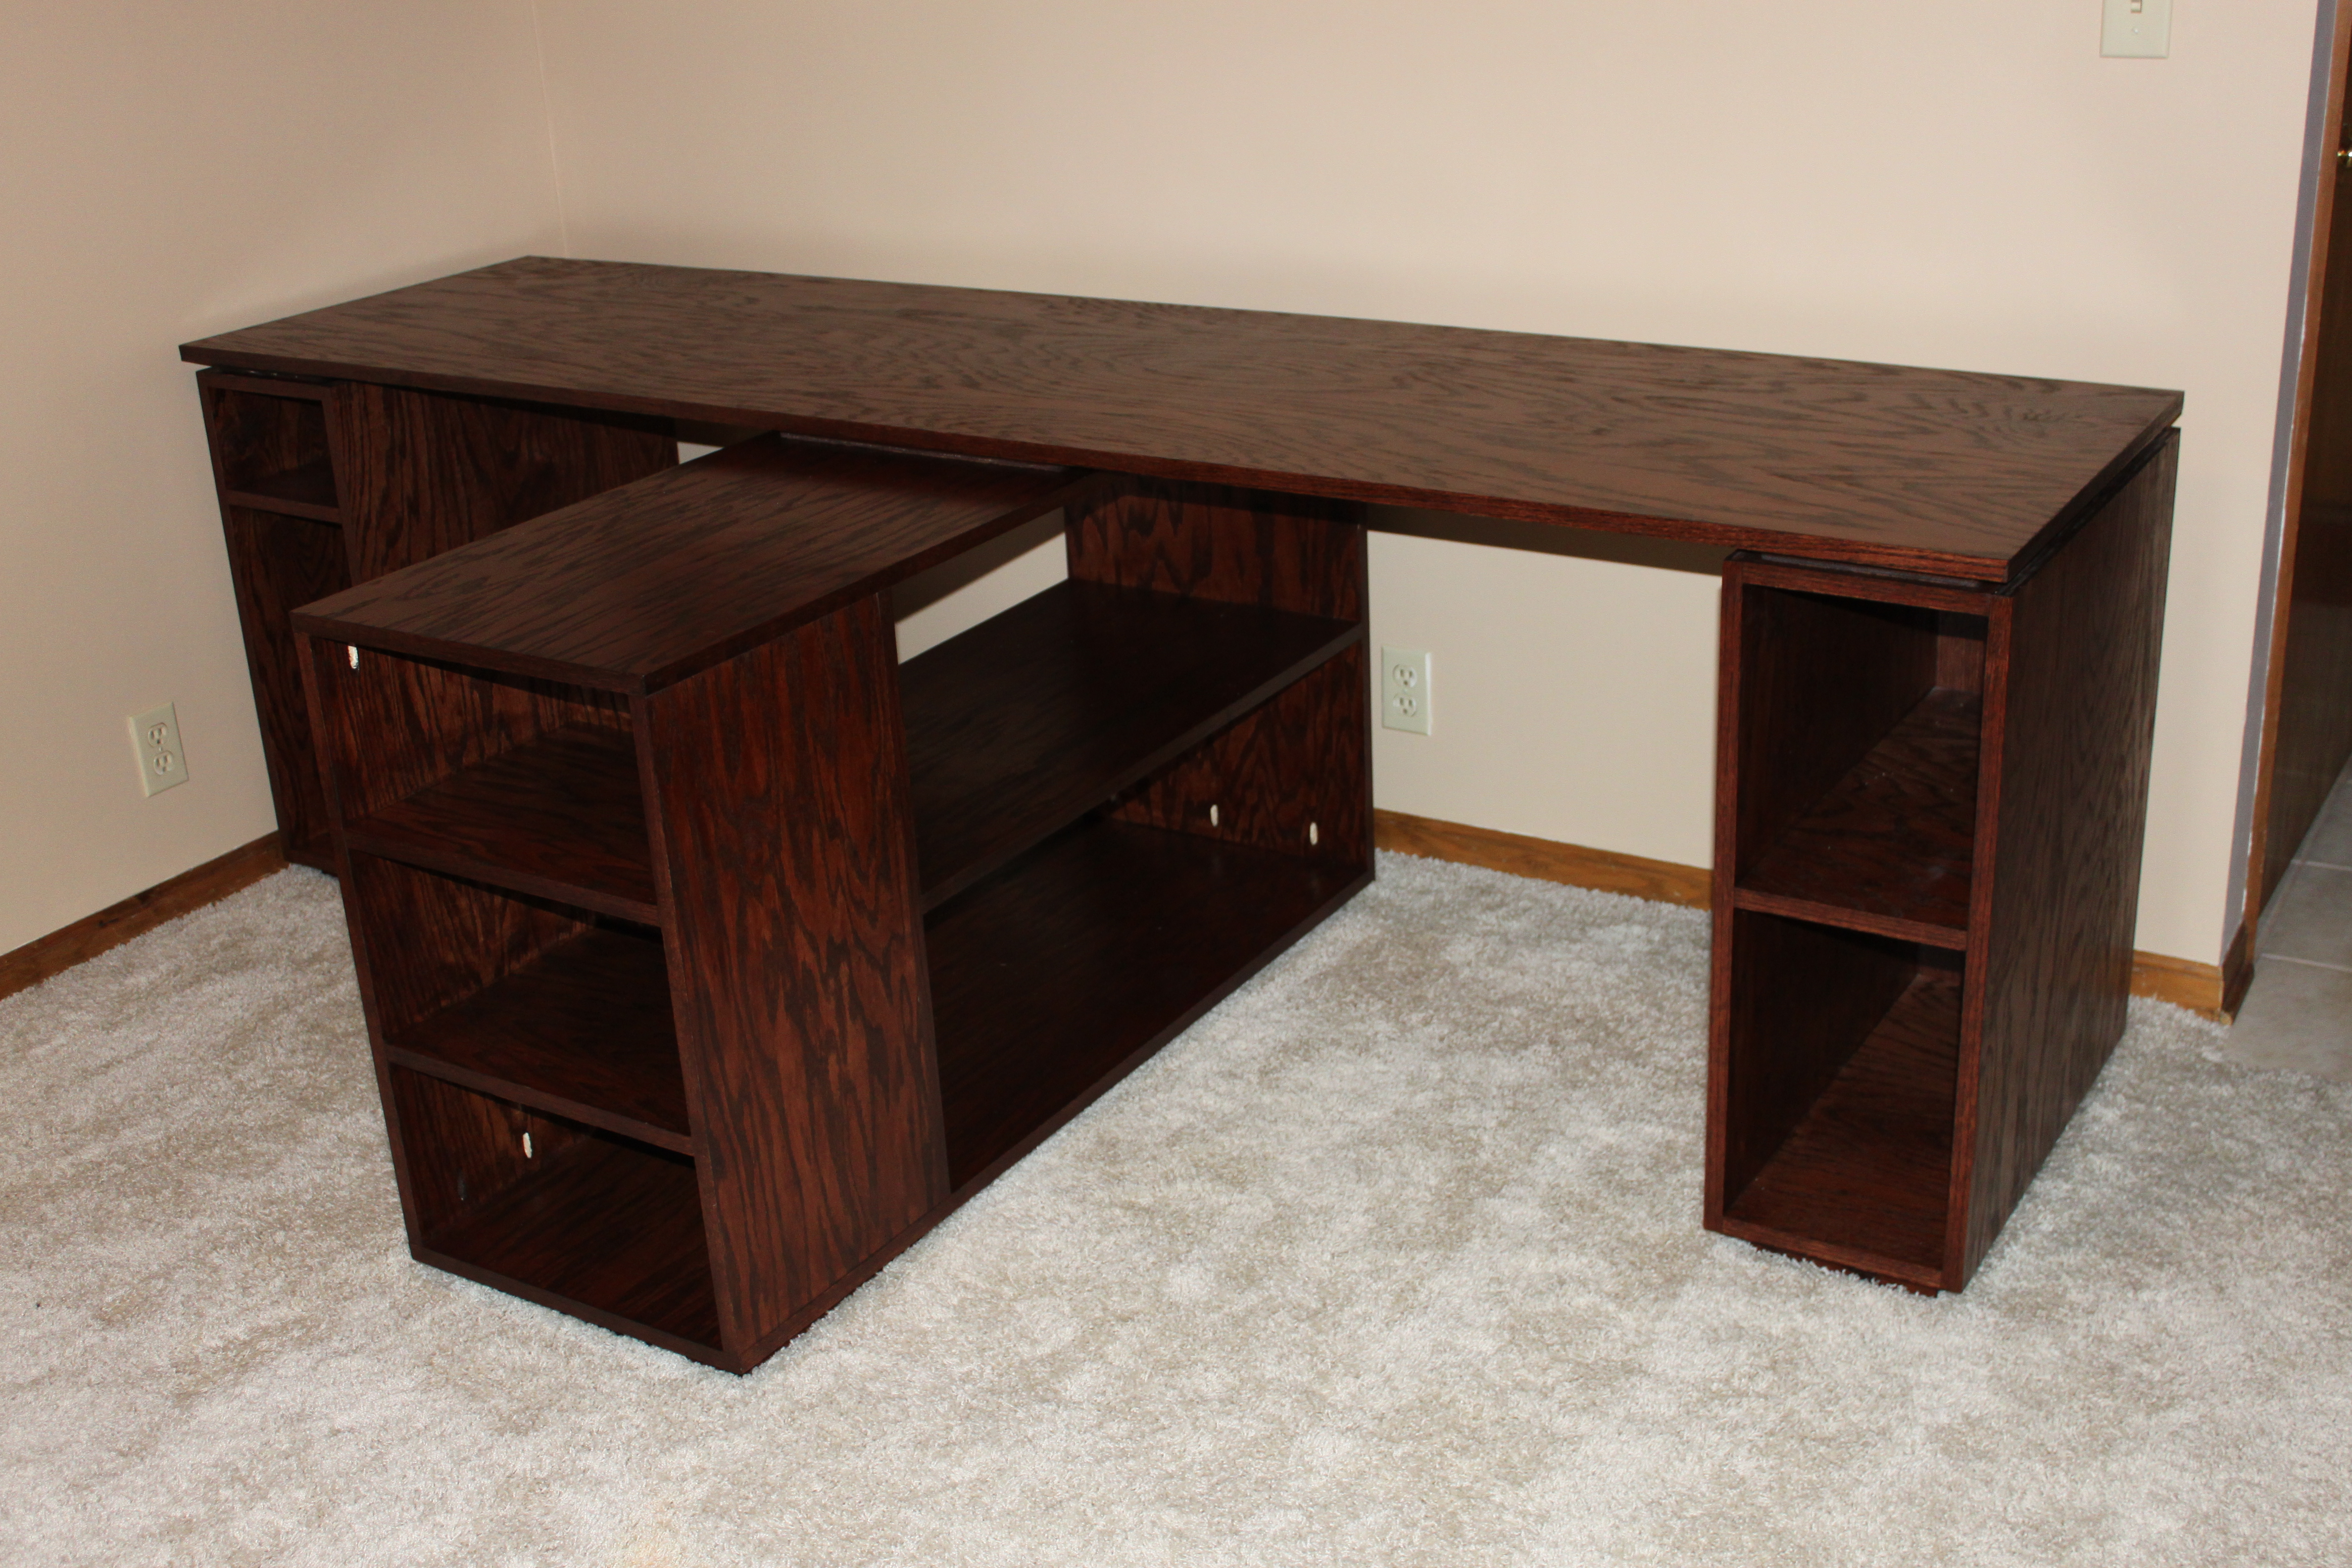 Dark Wood Finish Desk For Two Persons With Open File Shelves